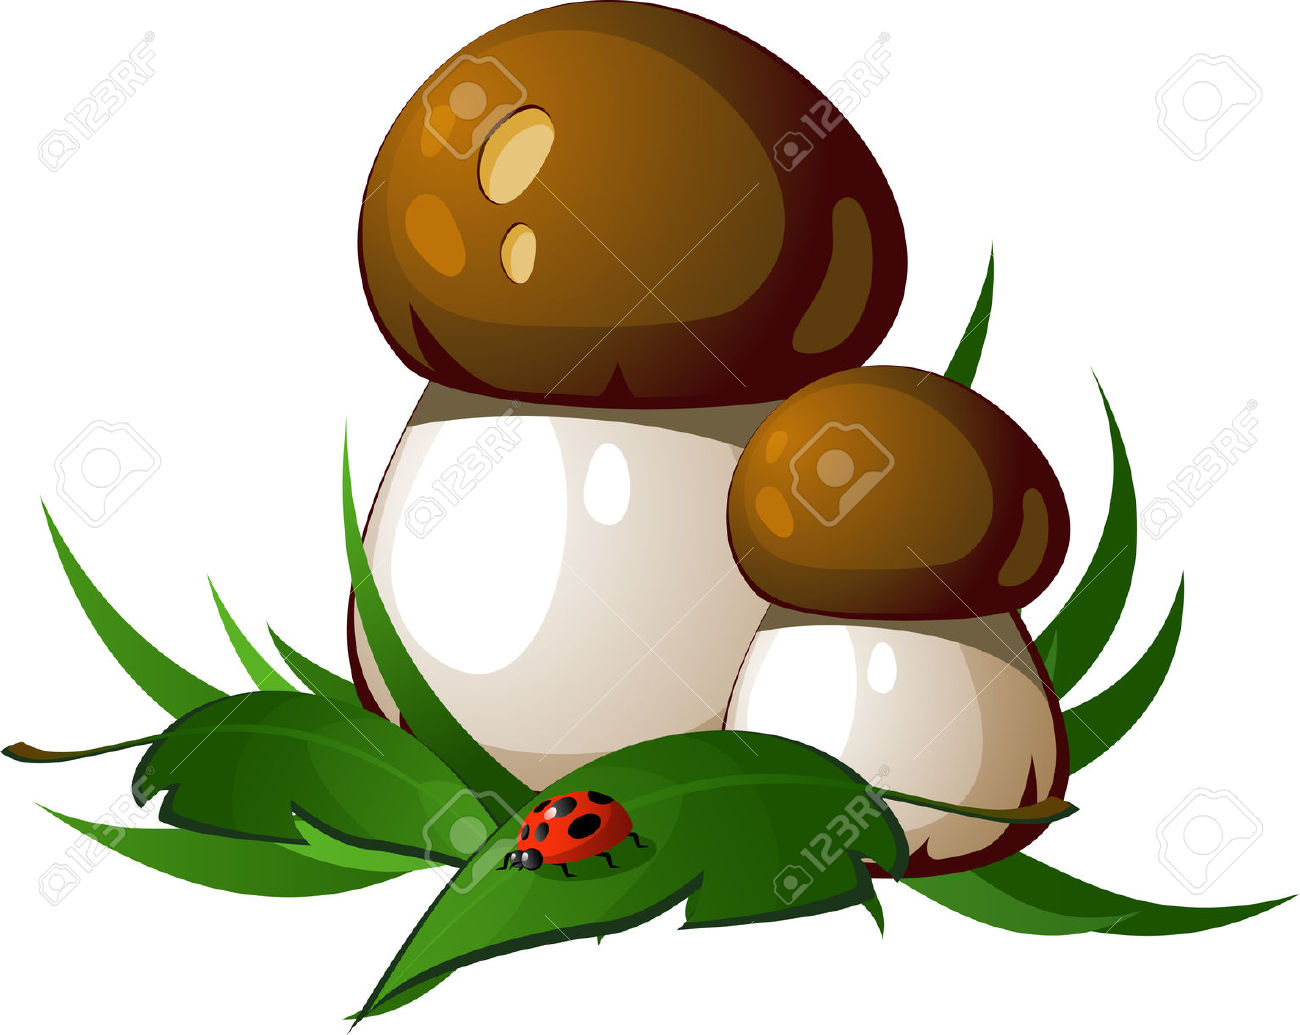 Ceps In The Grass. EPS8 Royalty Free Cliparts, Vectors, And Stock.